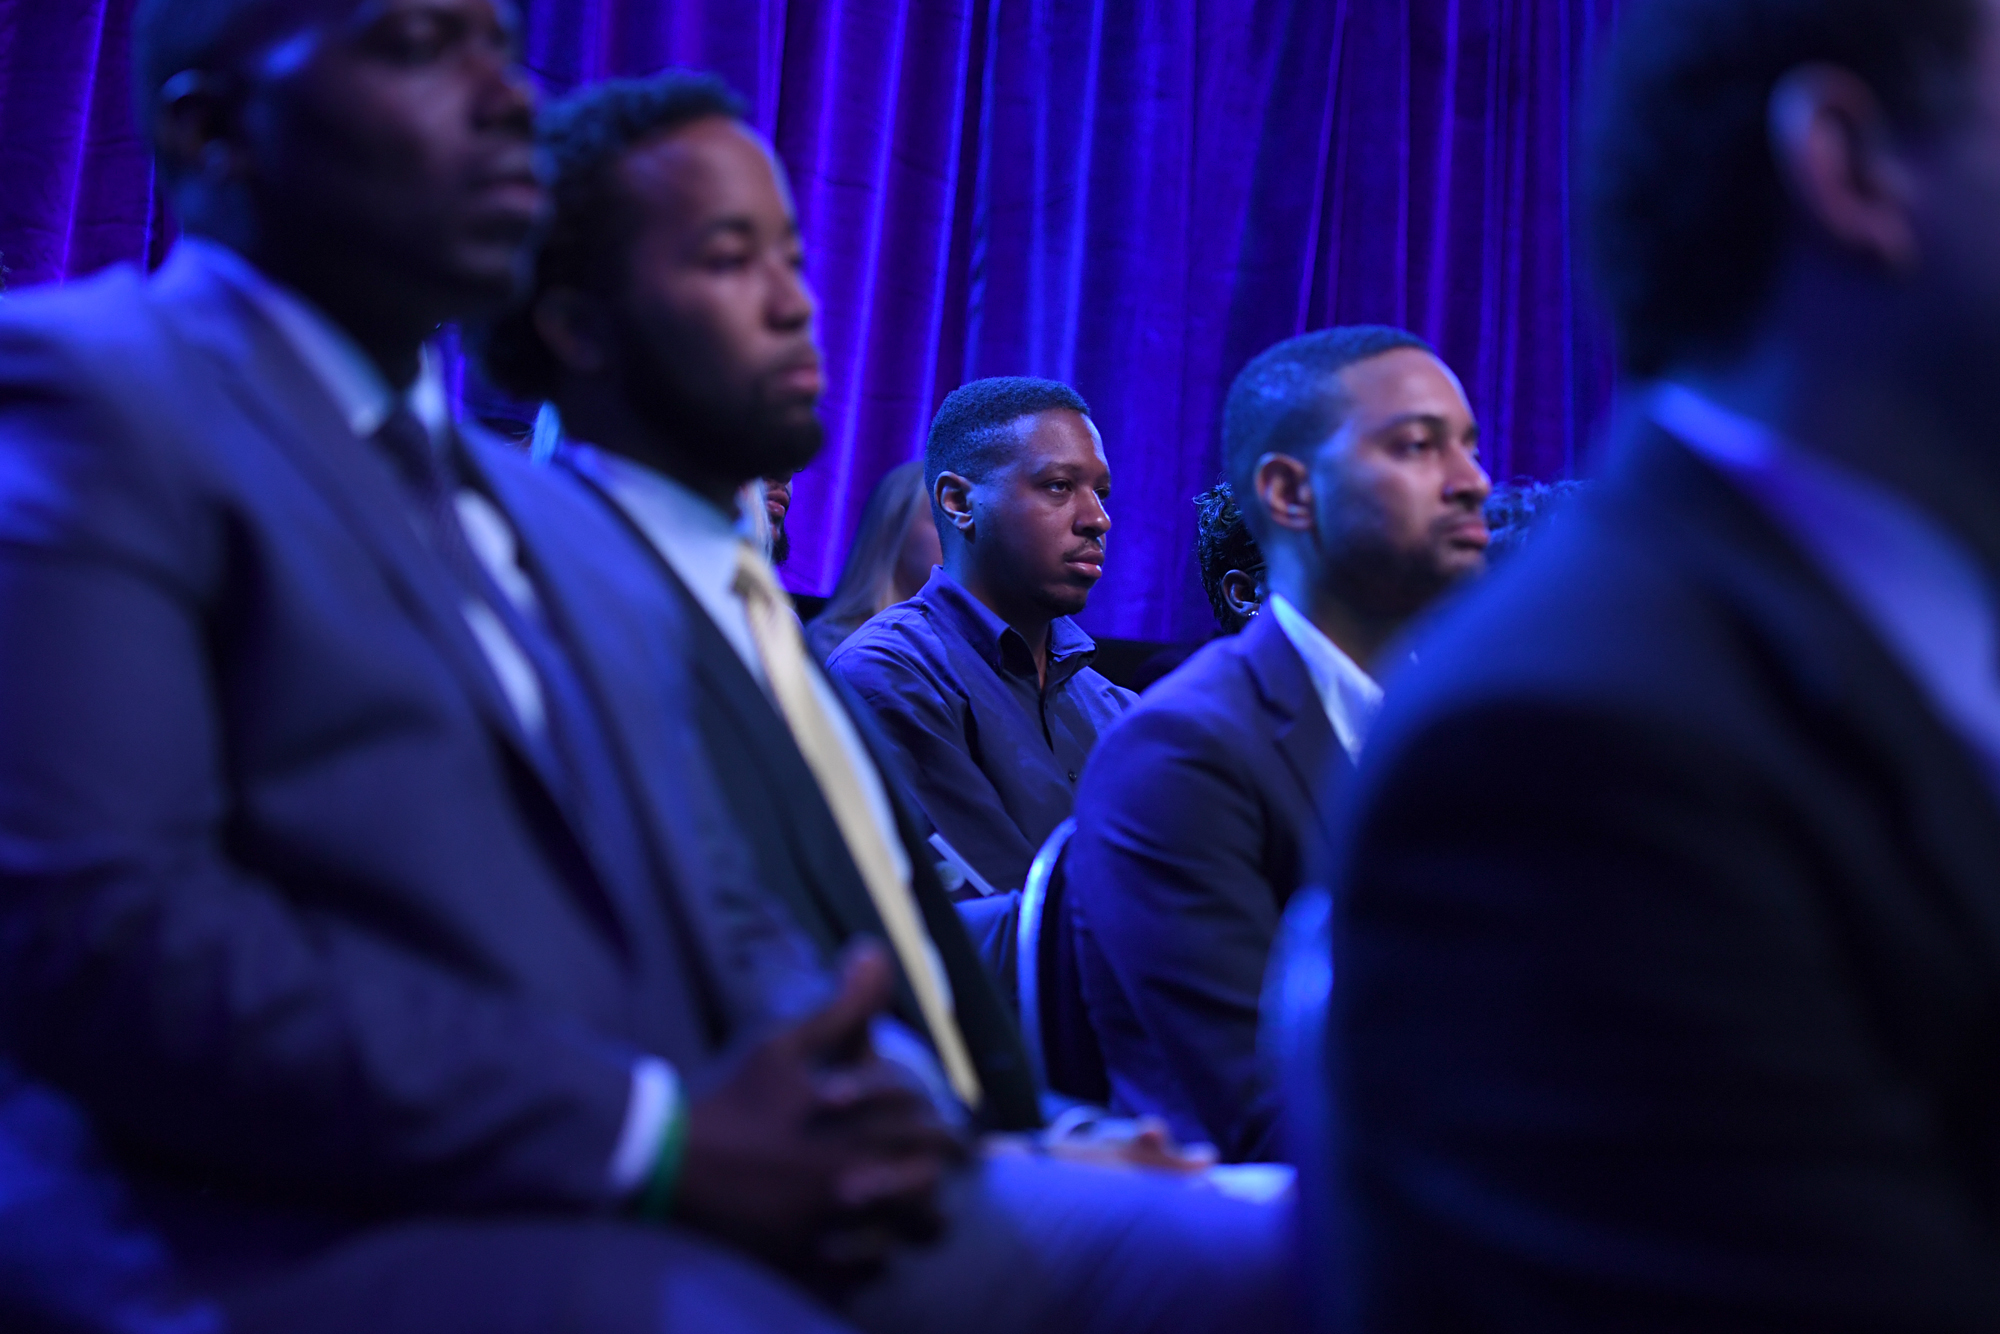 Audience members watch as ESPN's Stan Verrett and President Barack Obama talk during ESPNÕs The Undefeated: A Conversation with The President: Sports, Race and Achievement at the Alumni-Foundation Event Center on the campus of North Carolina A&T on October 11, 2016 in Greensboro, N.C.